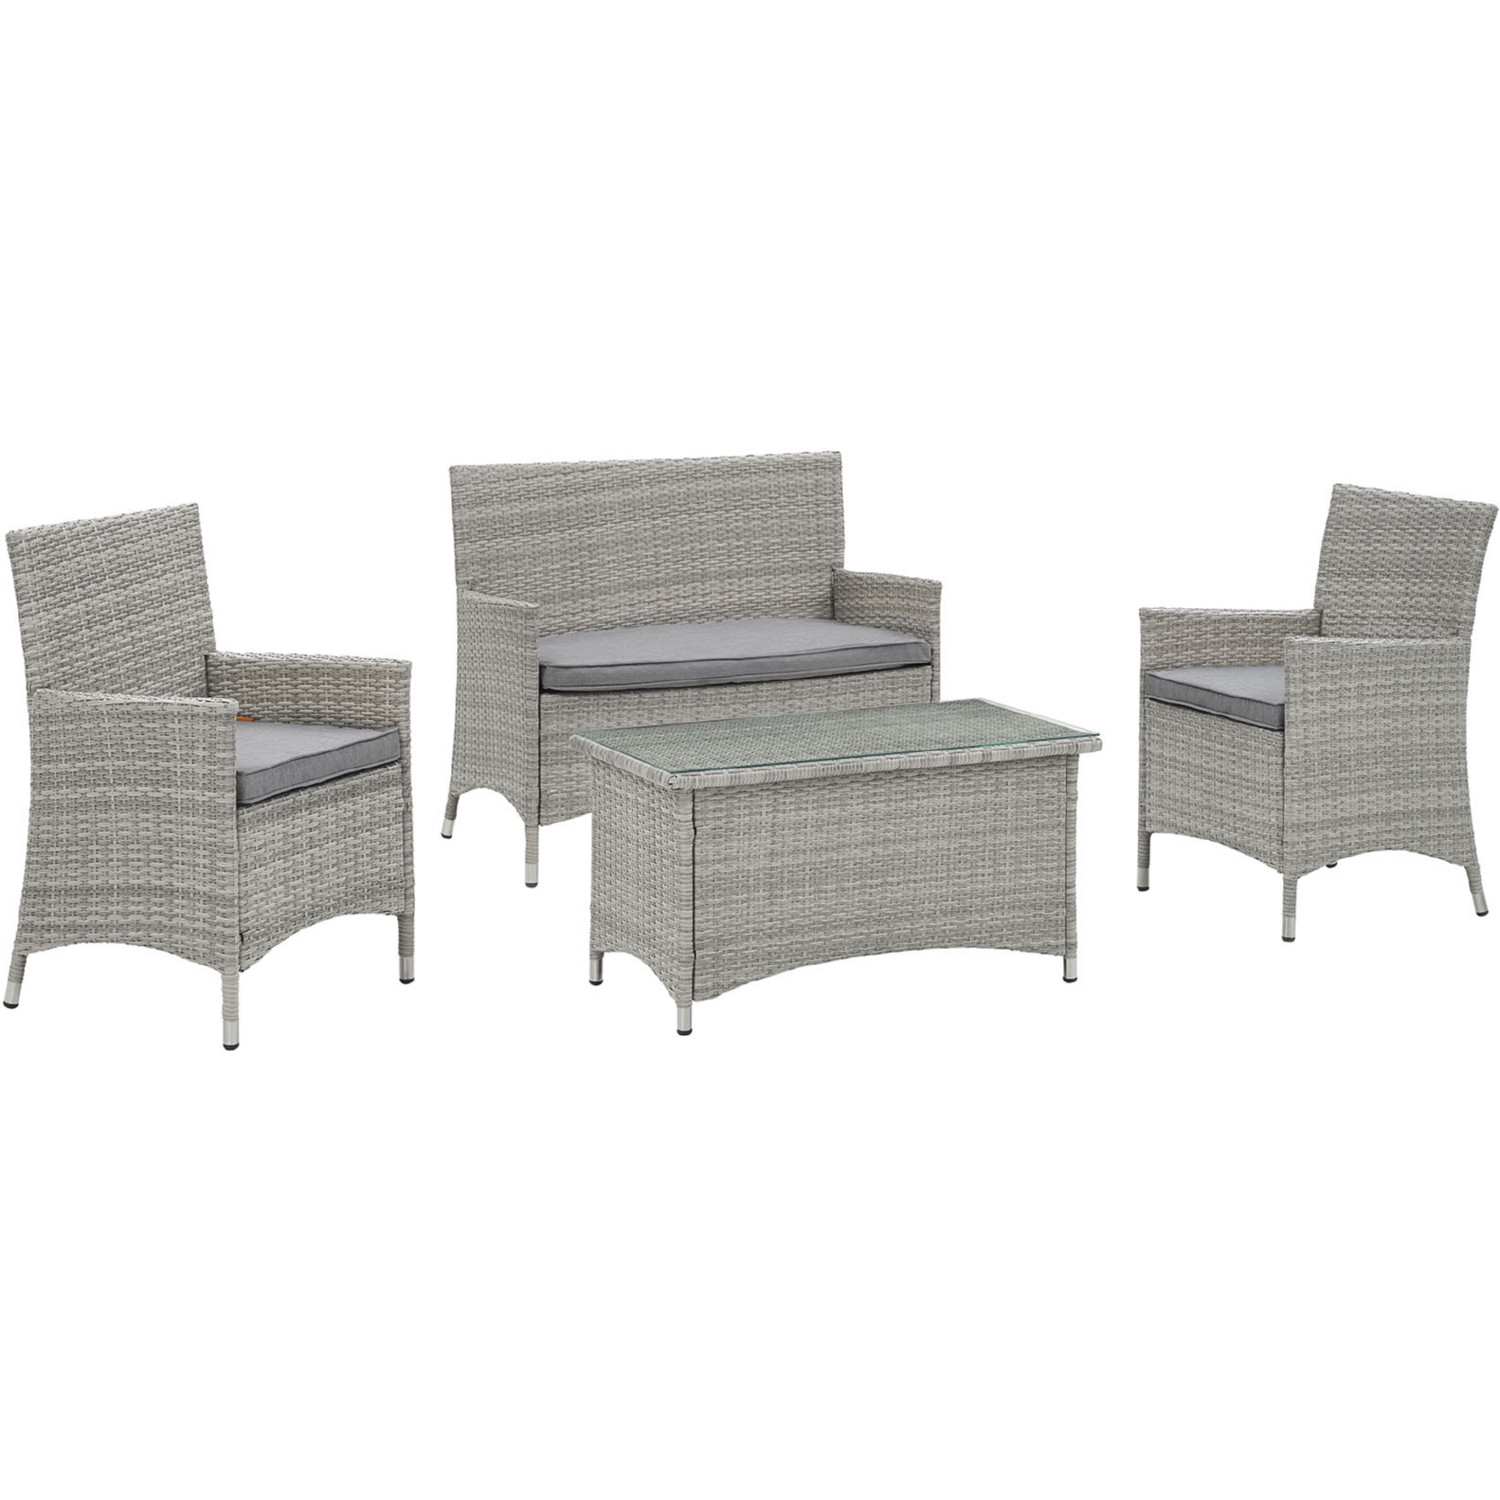 Super Bridge Outdoor Patio Loveseat Arm Chair Set In Light Gray W Gray W Cushions By Modway Theyellowbook Wood Chair Design Ideas Theyellowbookinfo